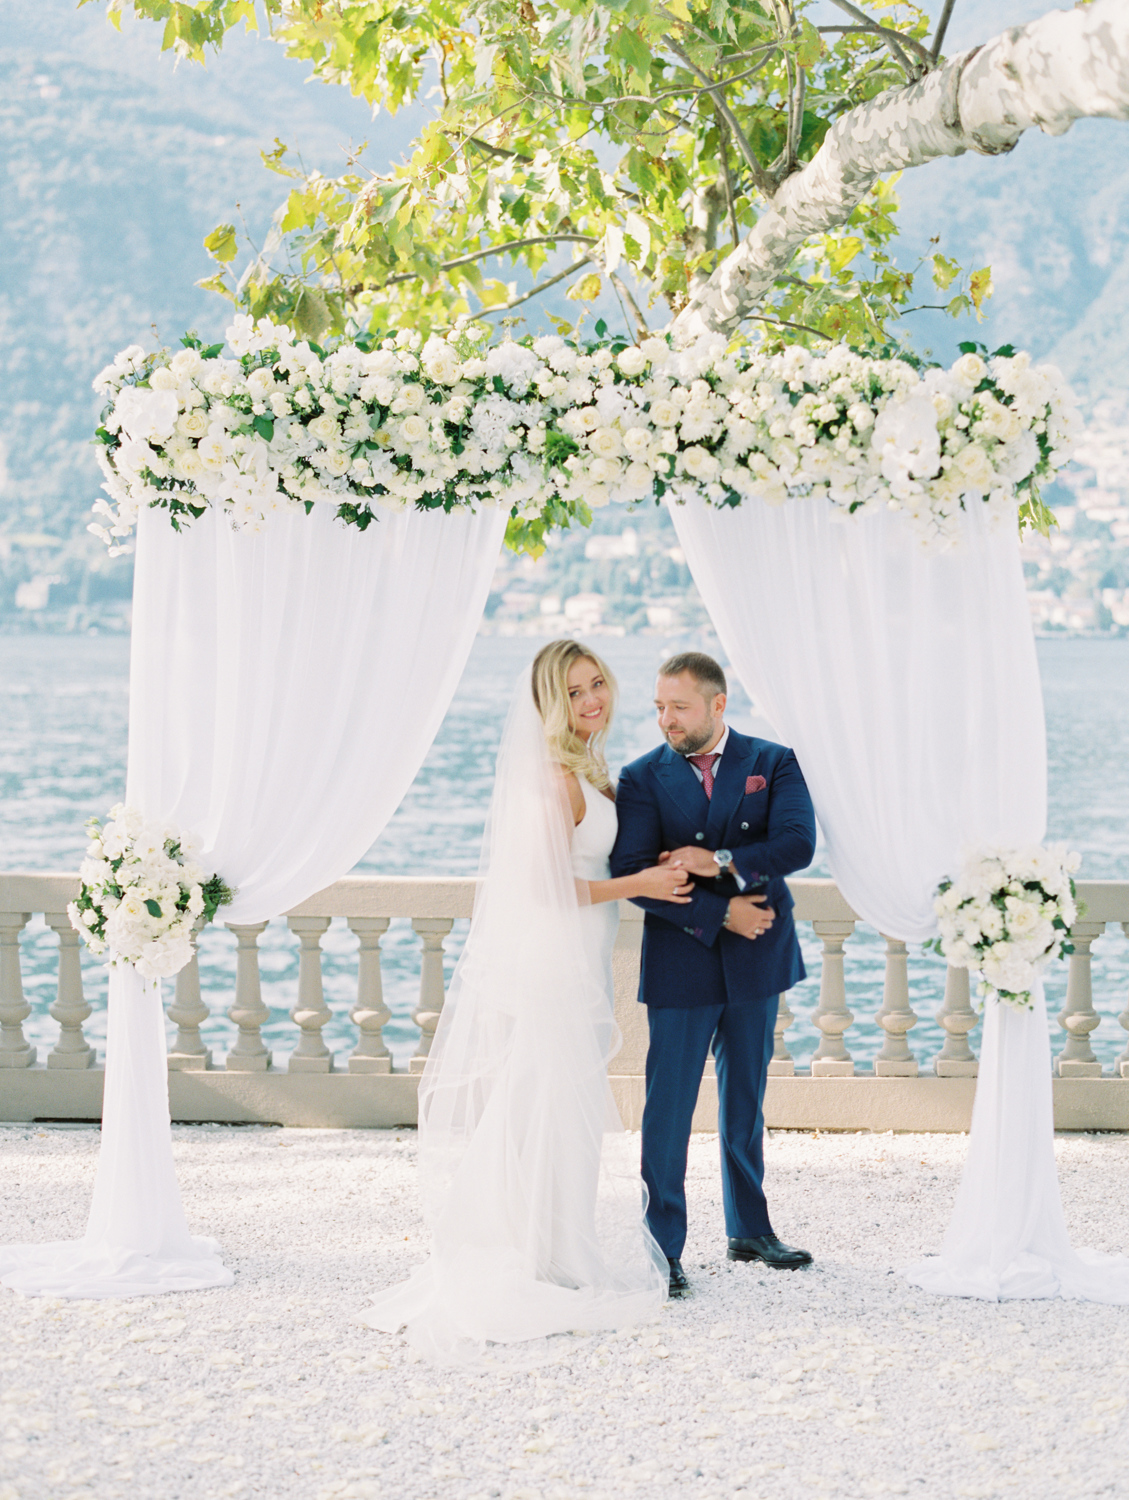 Amazing couple castadiva resort Italy wedding